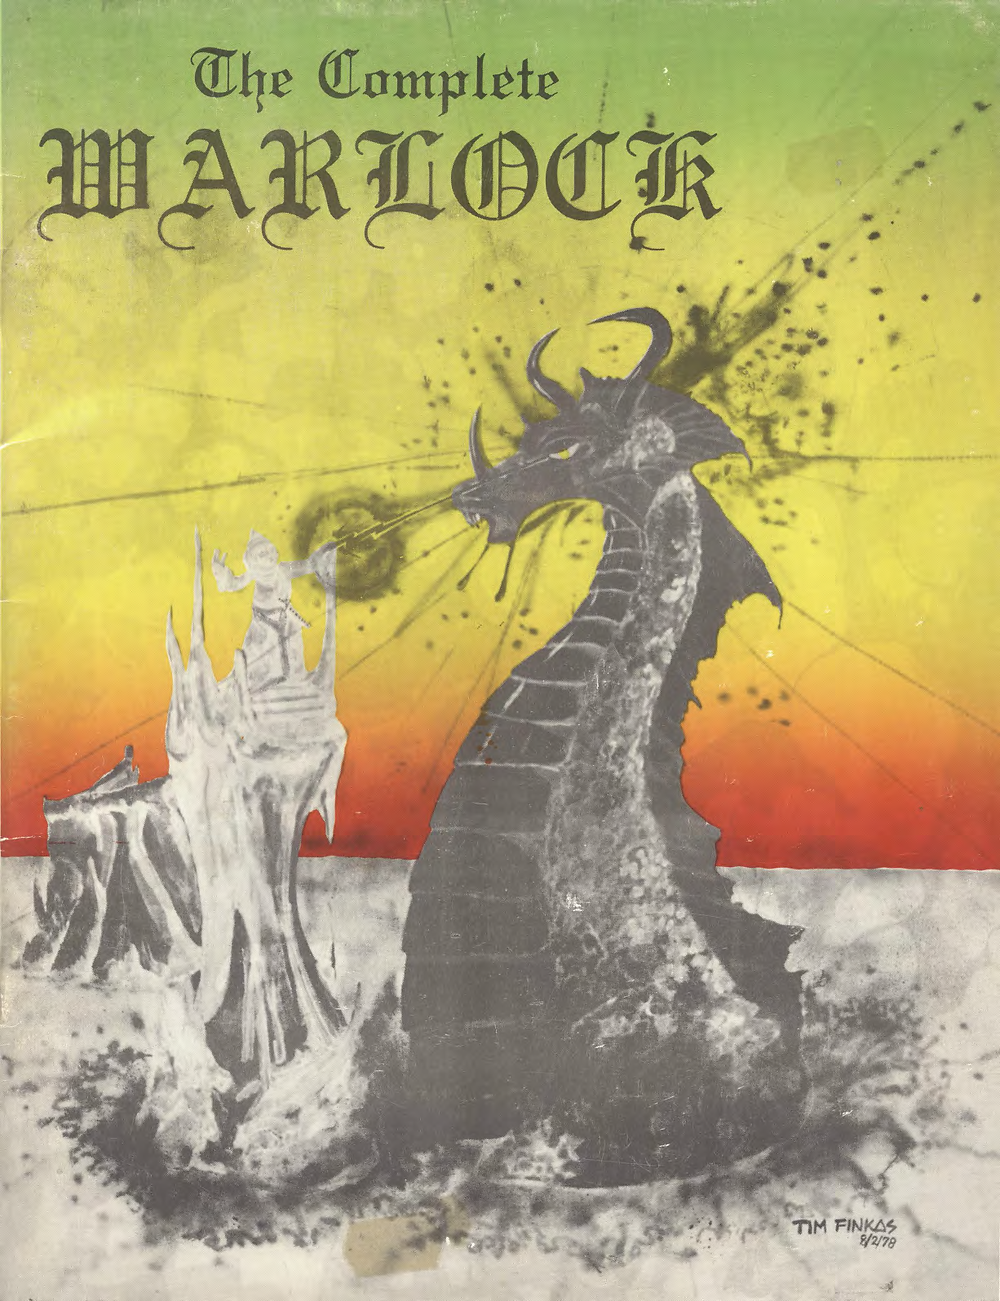 """The front cover of The Complete Warlock, showing a Warlock casting a spell at a large Dragon. Text reads """"The Complete Warlock"""""""